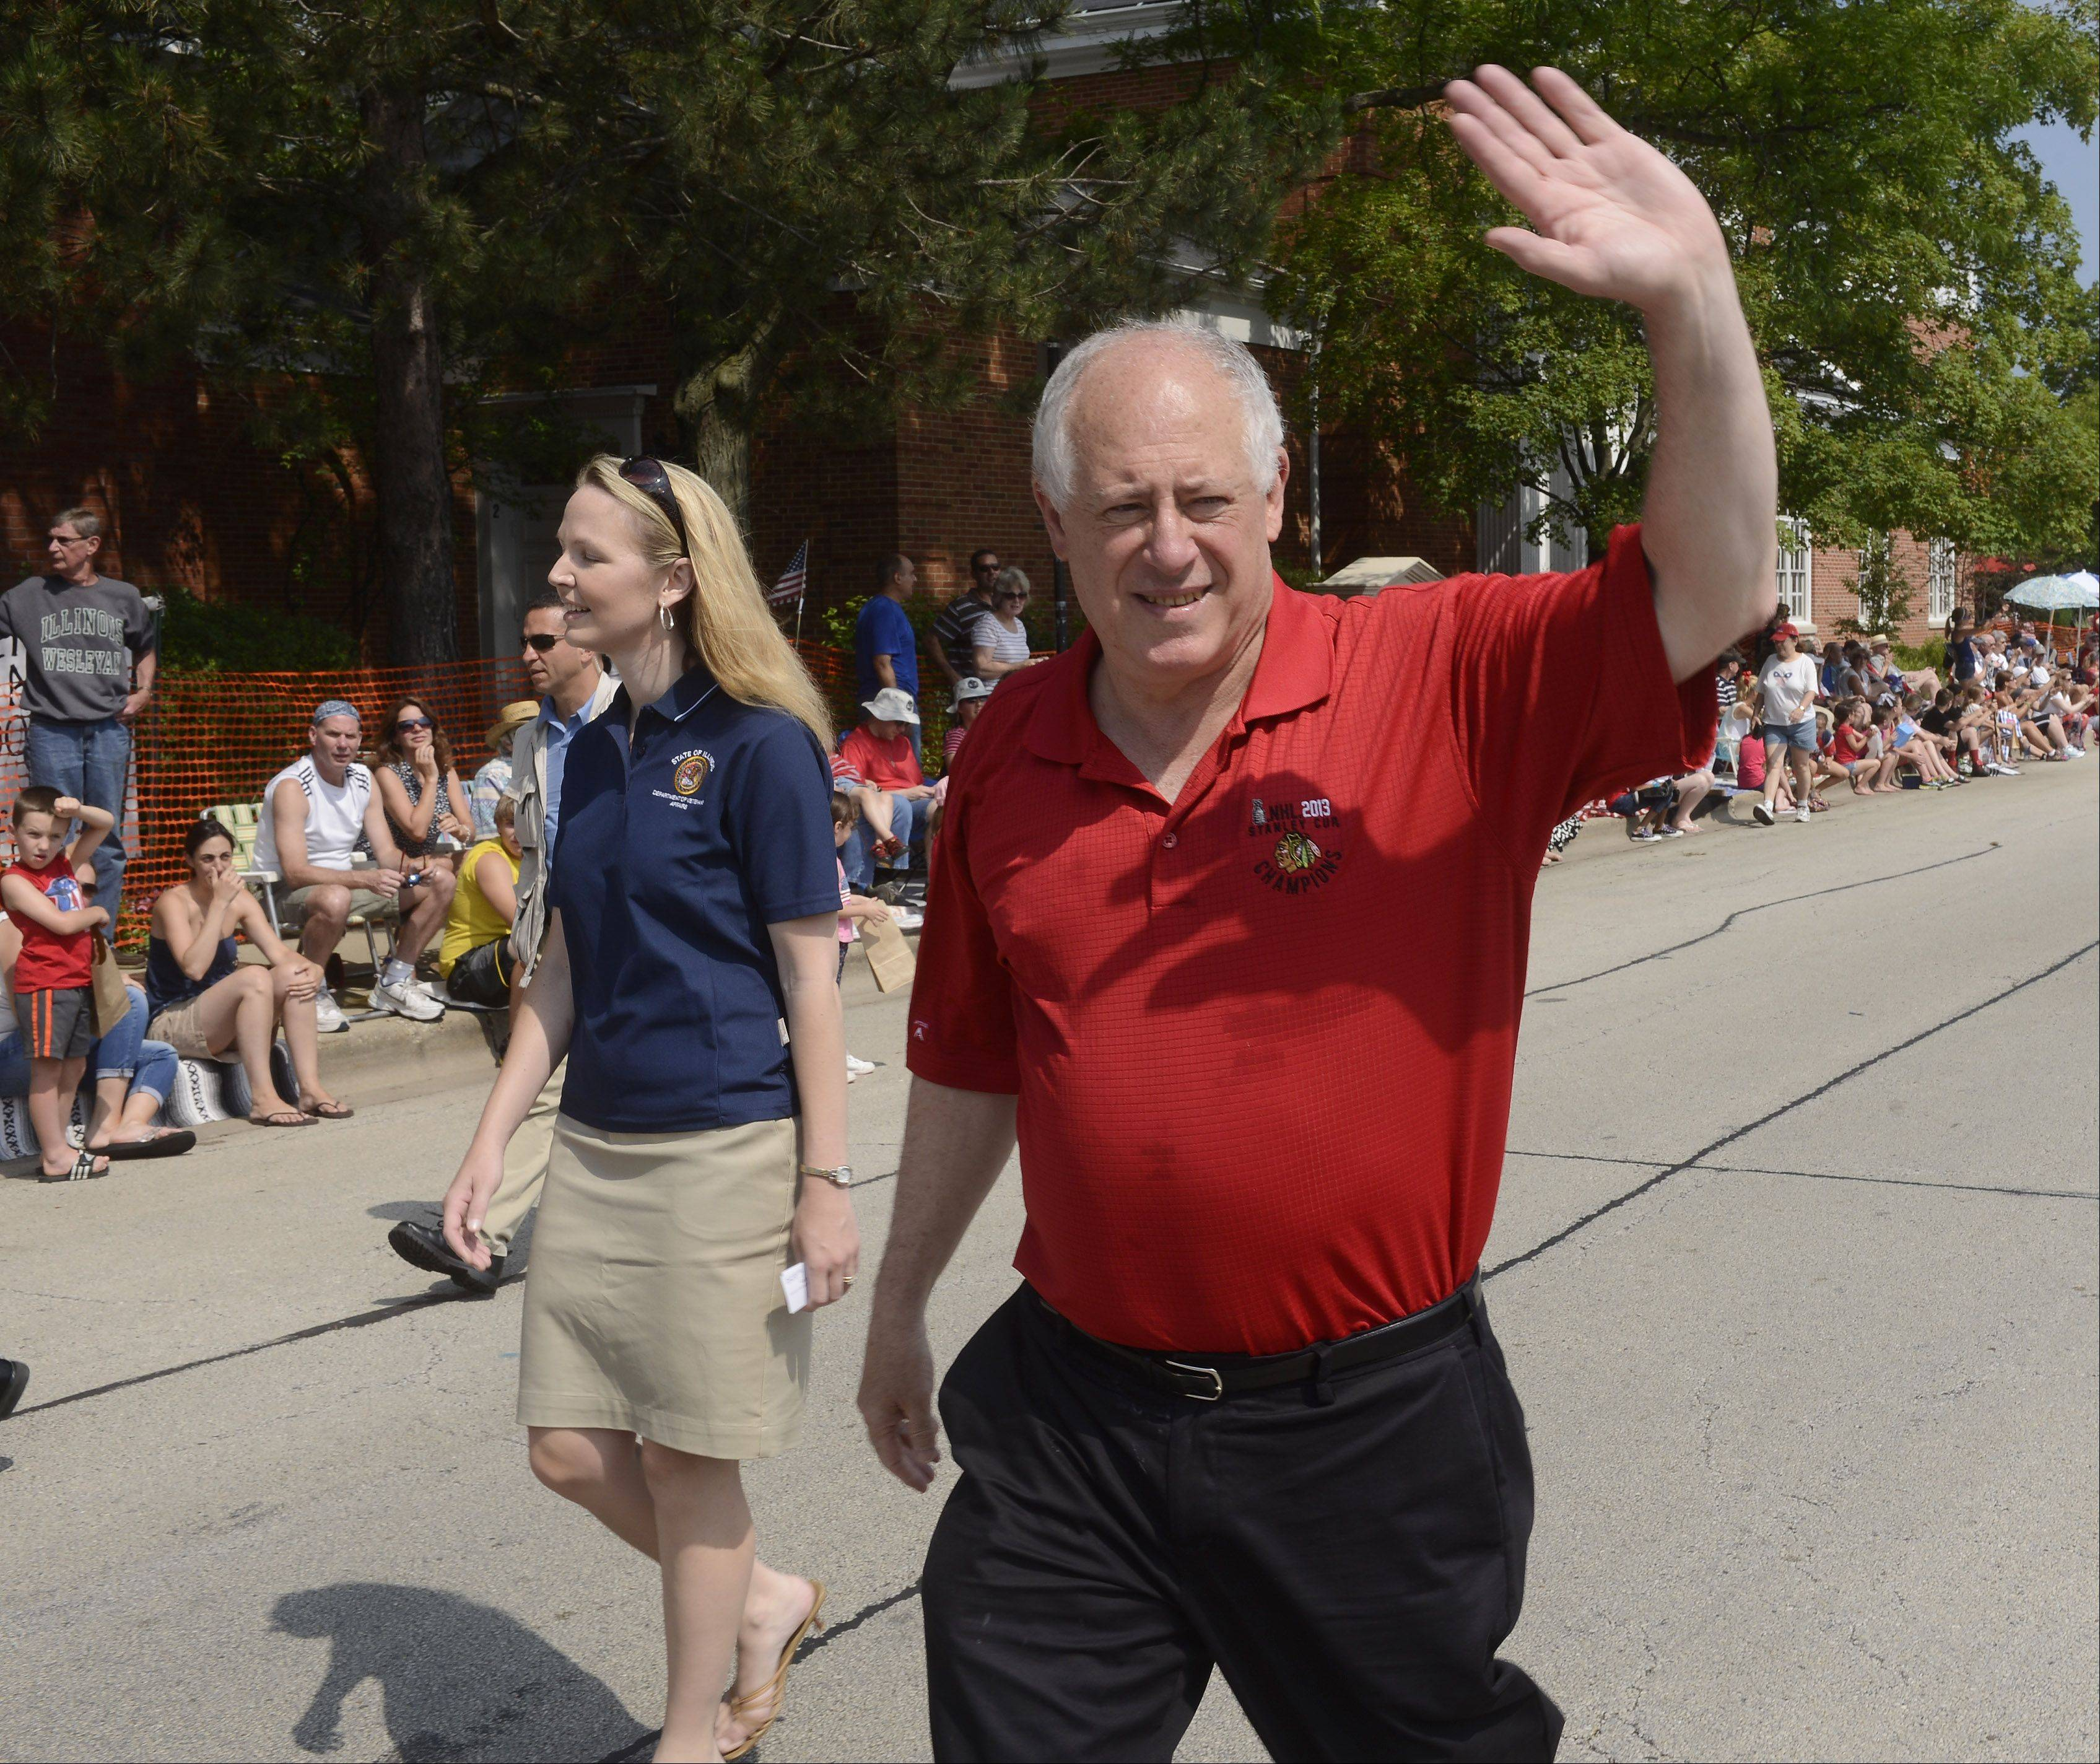 Illinois Governor Pat Quinn waves to the crowd while marching in the Arlington Heights Fourth of July parade Thursday.